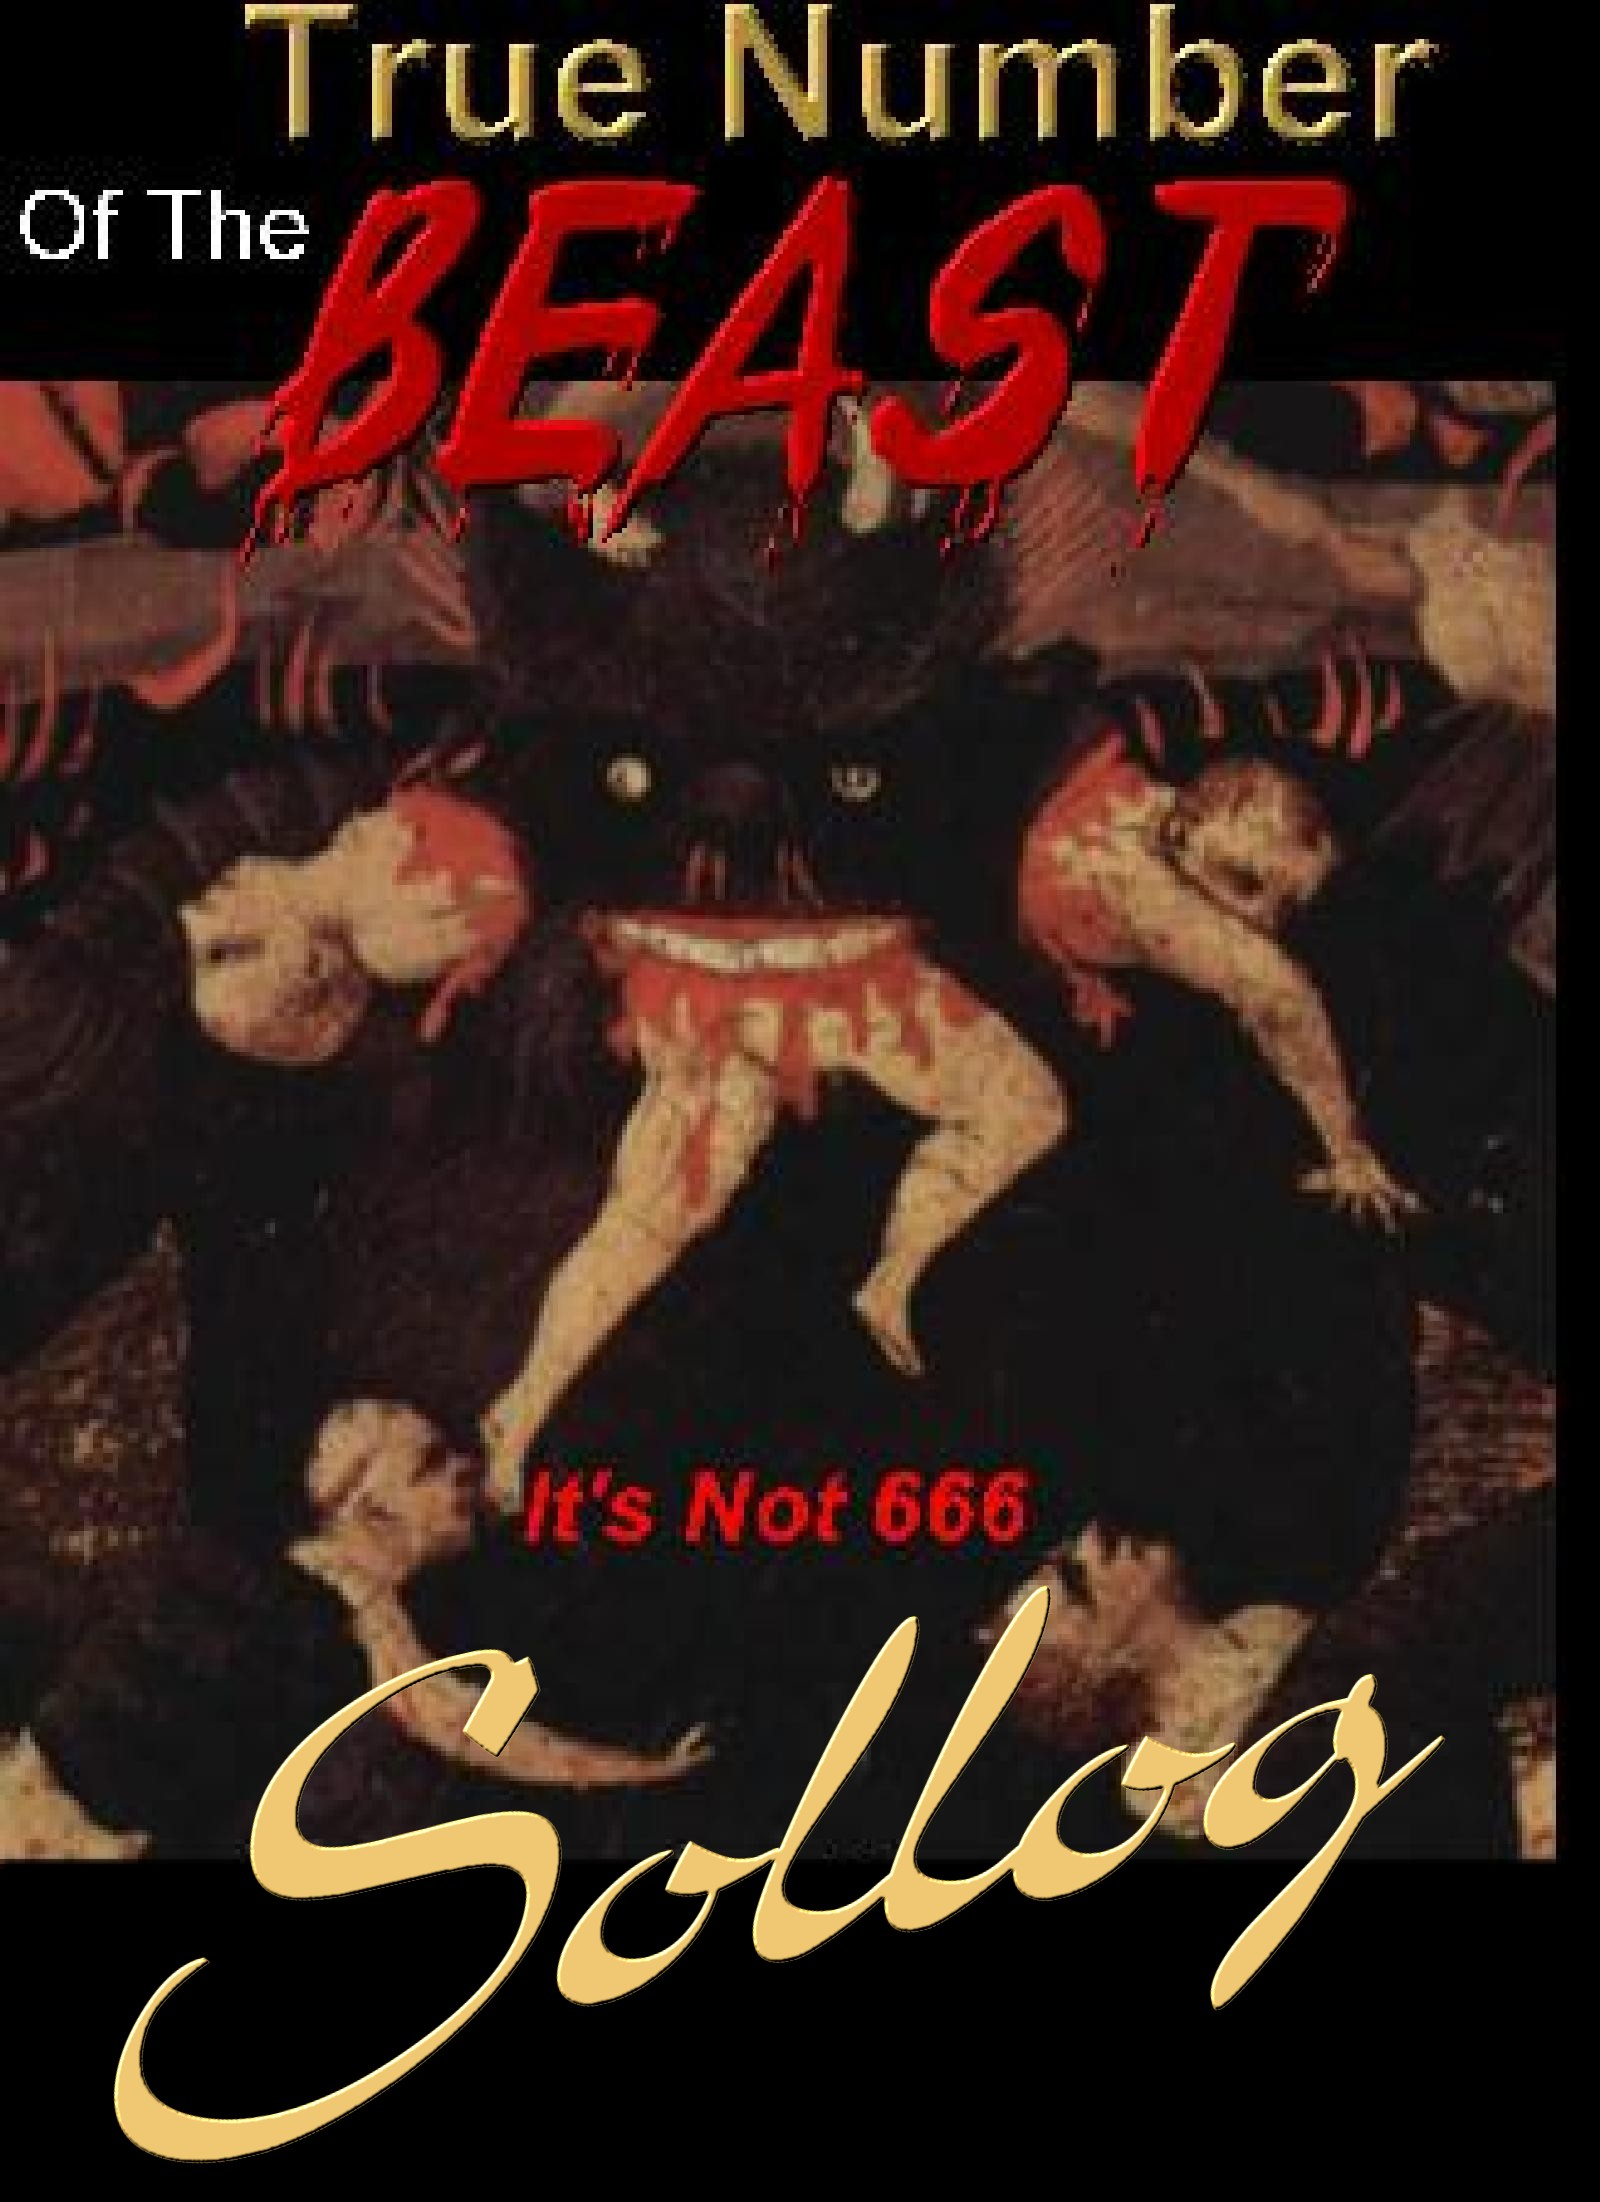 True Number of the Beast 666 or 616? Book Cover